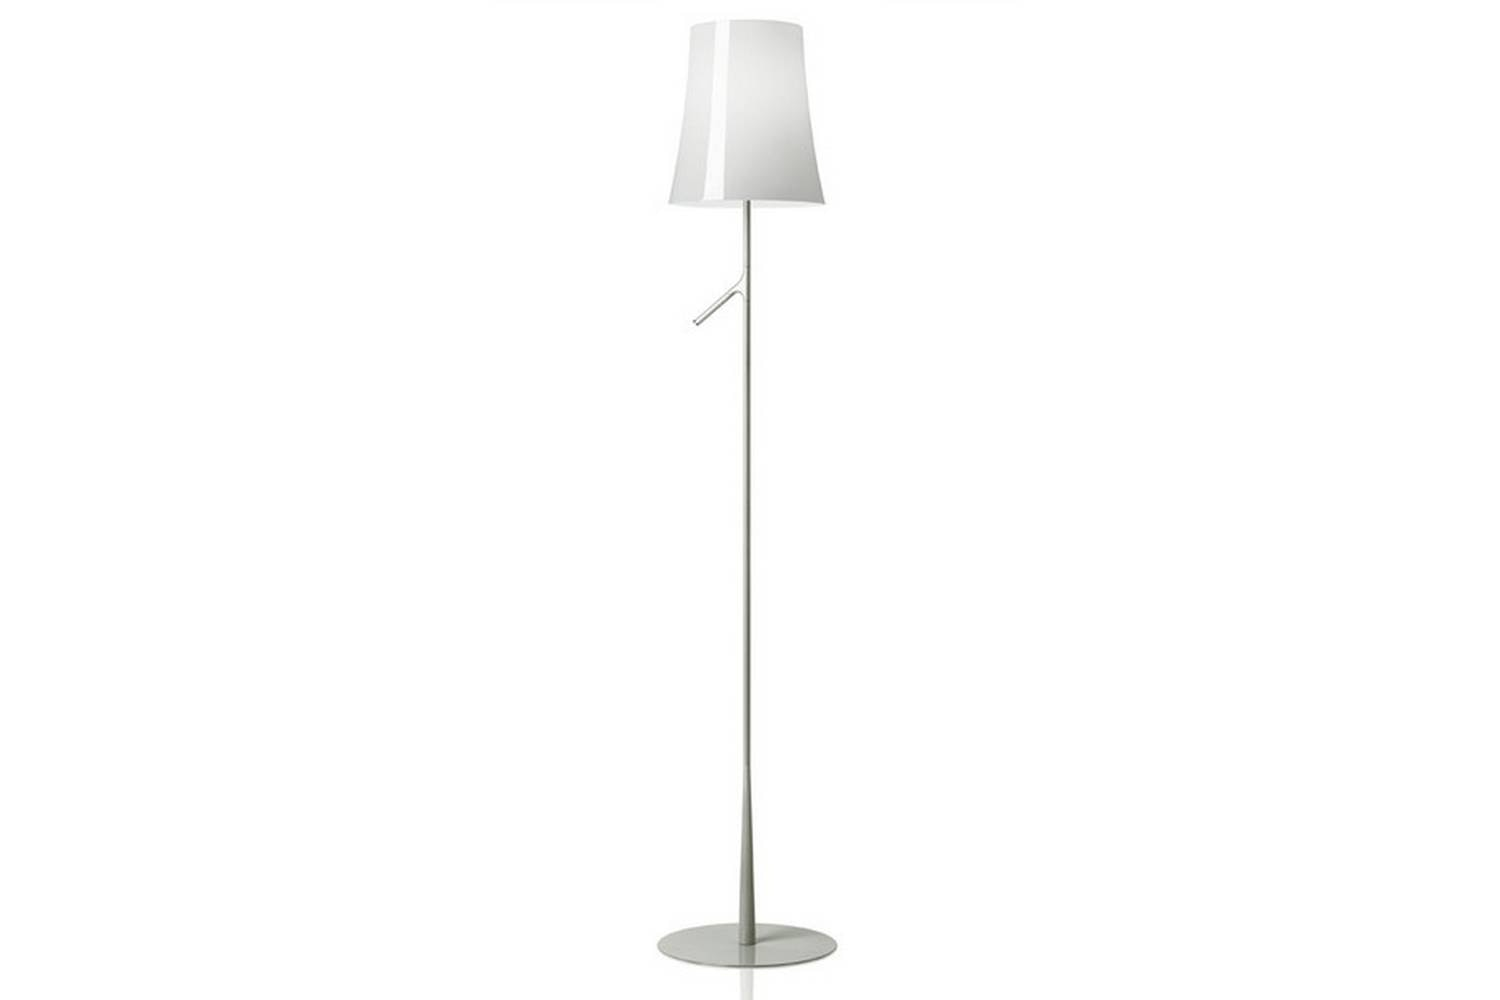 Birdie Floor Lamp by Ludovica & Roberto Palomba for Foscarini